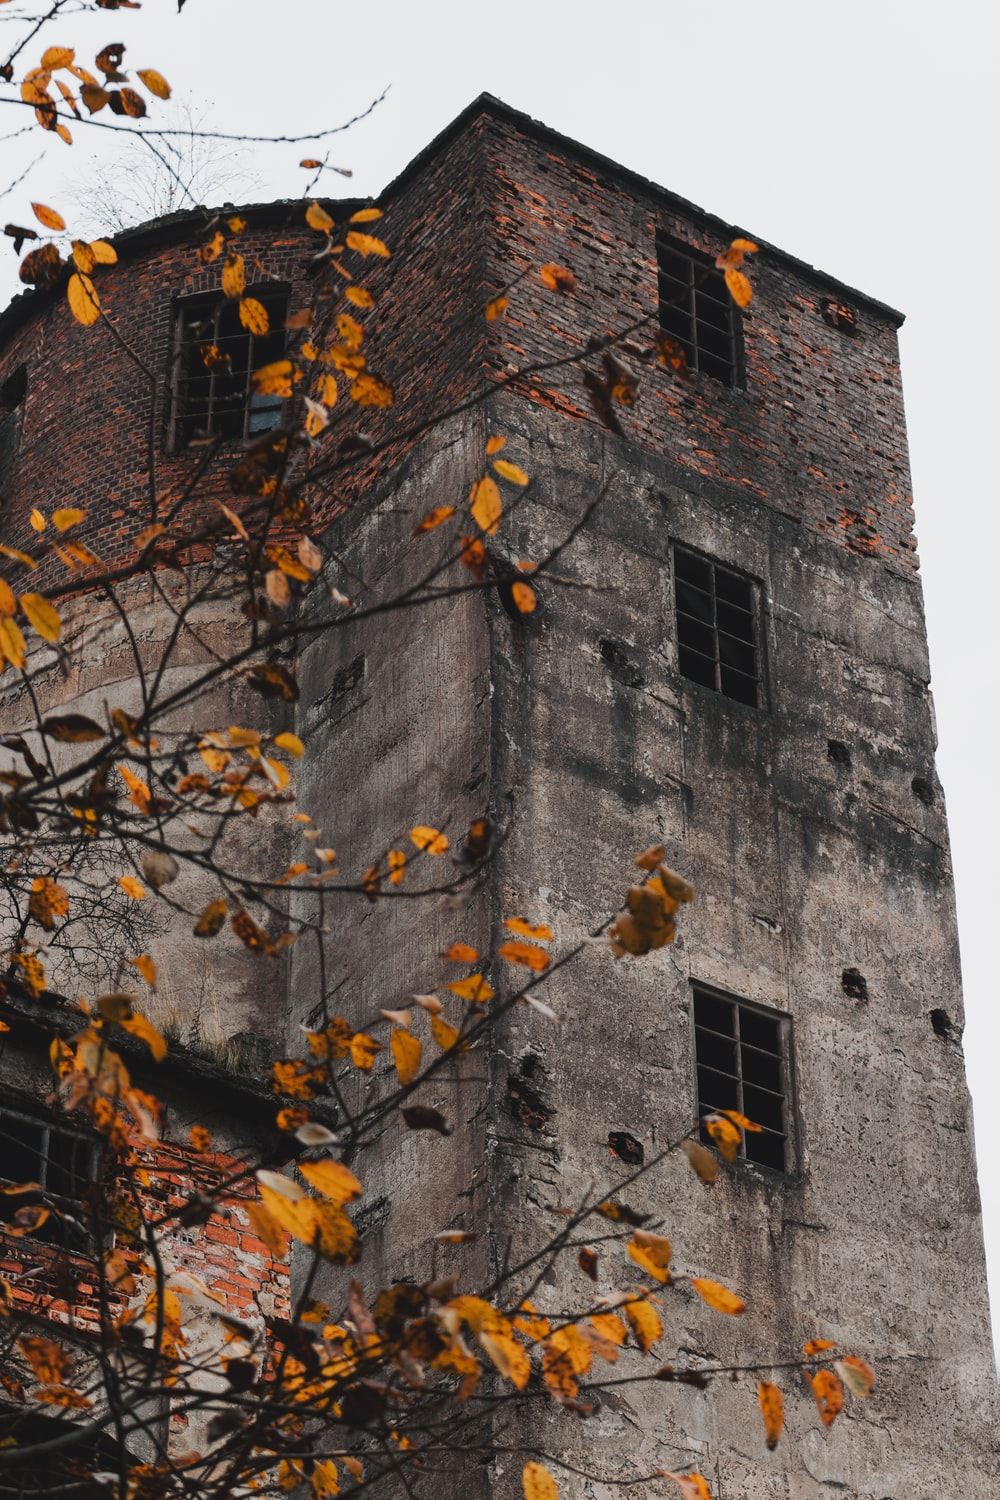 brown tree with yellow leaves near gray concrete building